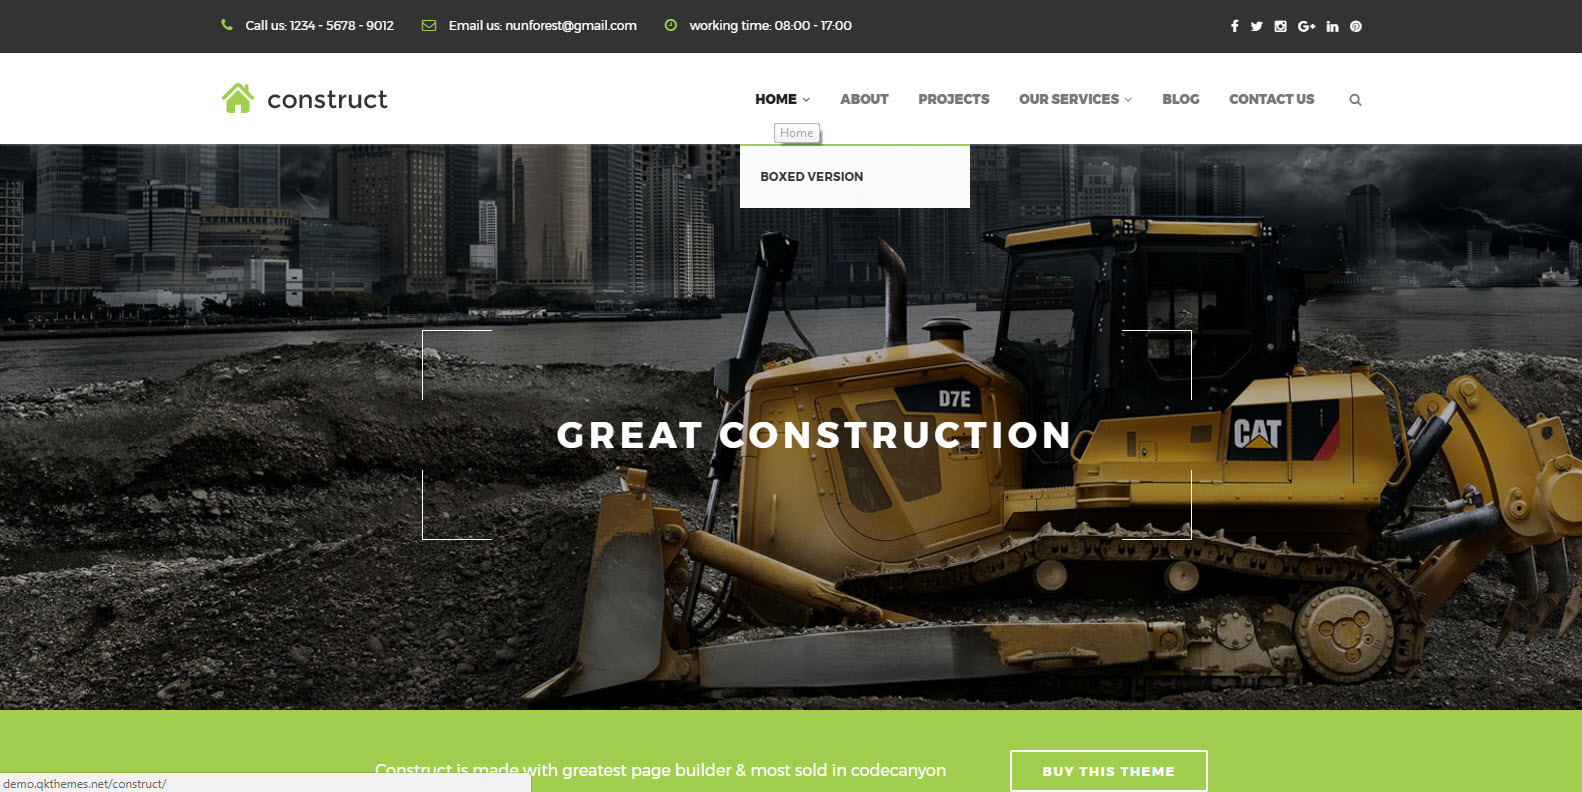 construction architechture wordpress theme - theme construction wordpress - finance wordpress theme